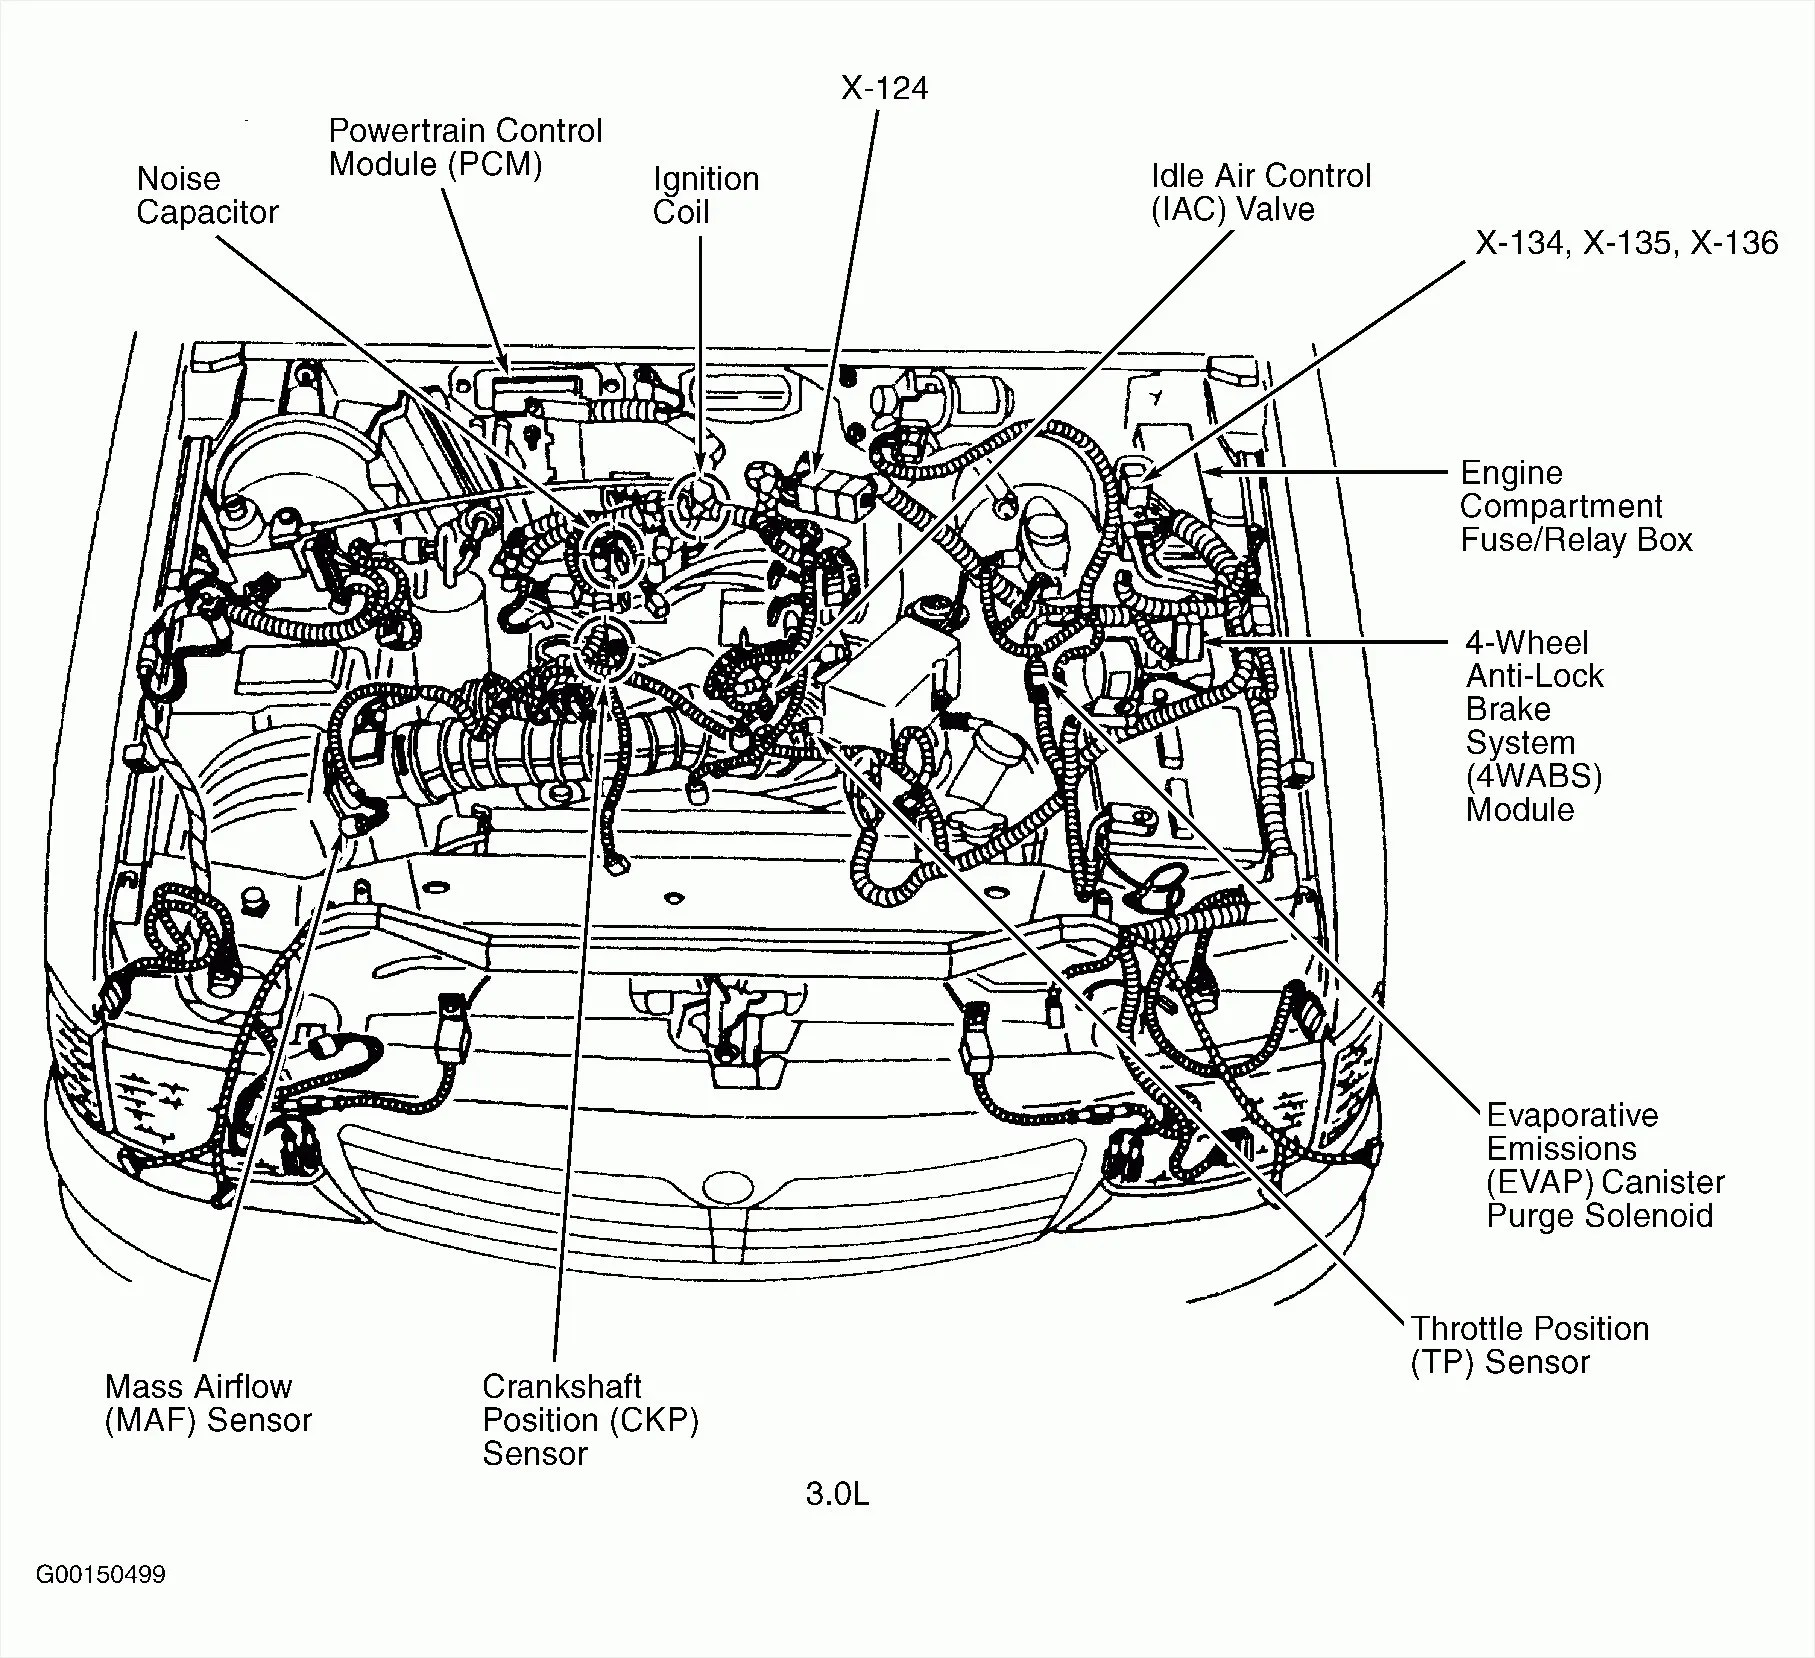 hight resolution of olds intrigue 3 5 engine diagram 1989 wiring diagram used olds intrigue 3 5 engine diagram